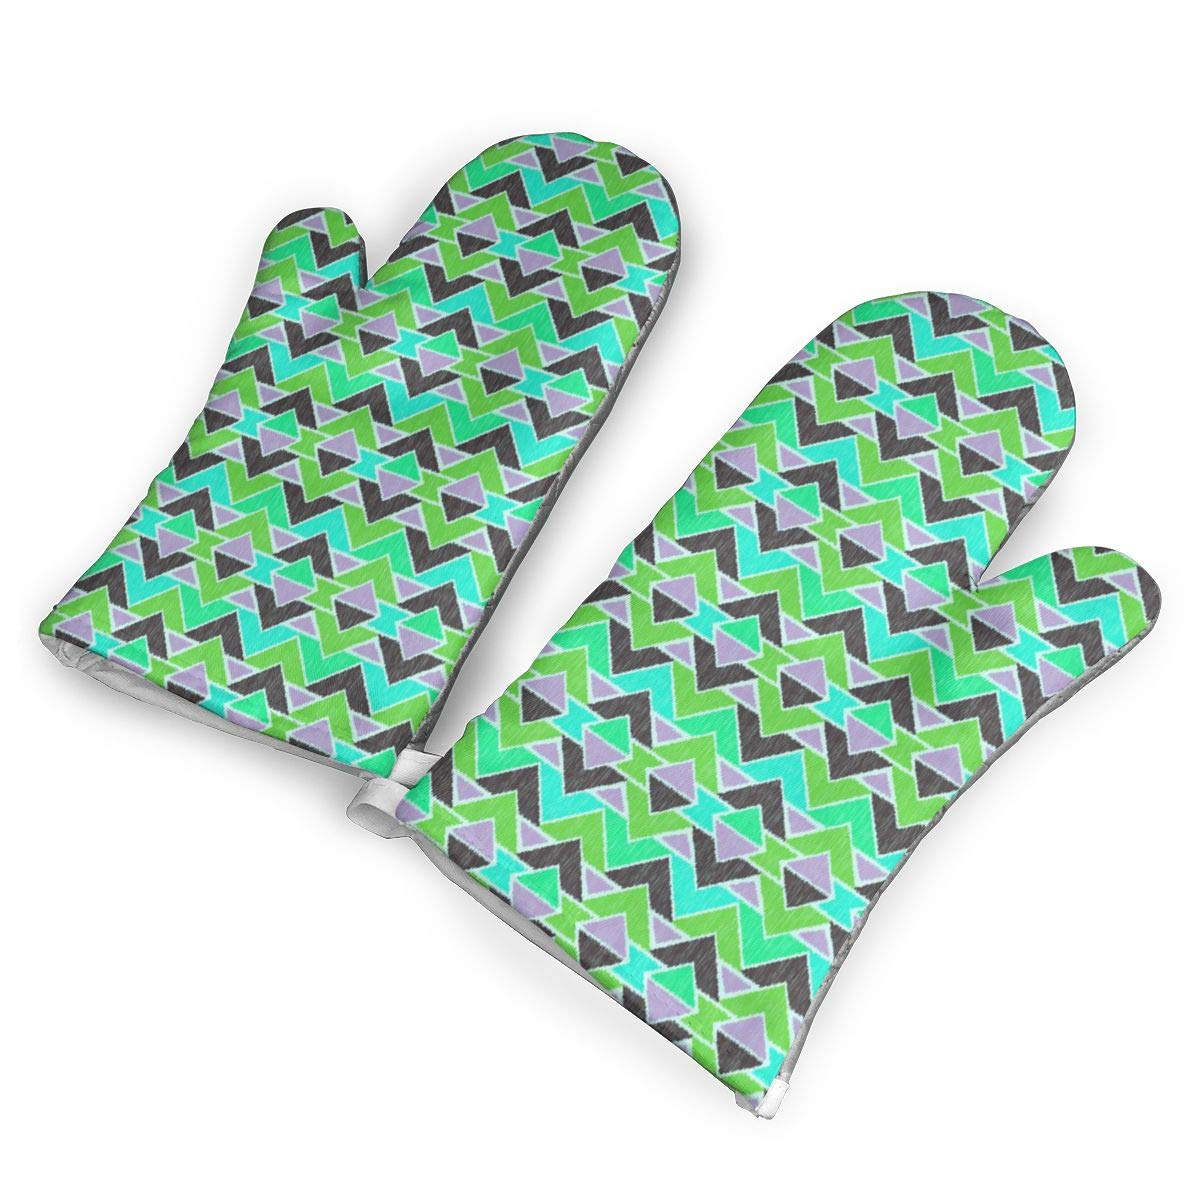 Oven Mitts 5.5 X 12 In Sequoyah Arrows Ikate Color Non-Slip Kitchen Oven Gloves Heat Resistant Washable Cotton Lining by KIXYOUHUU